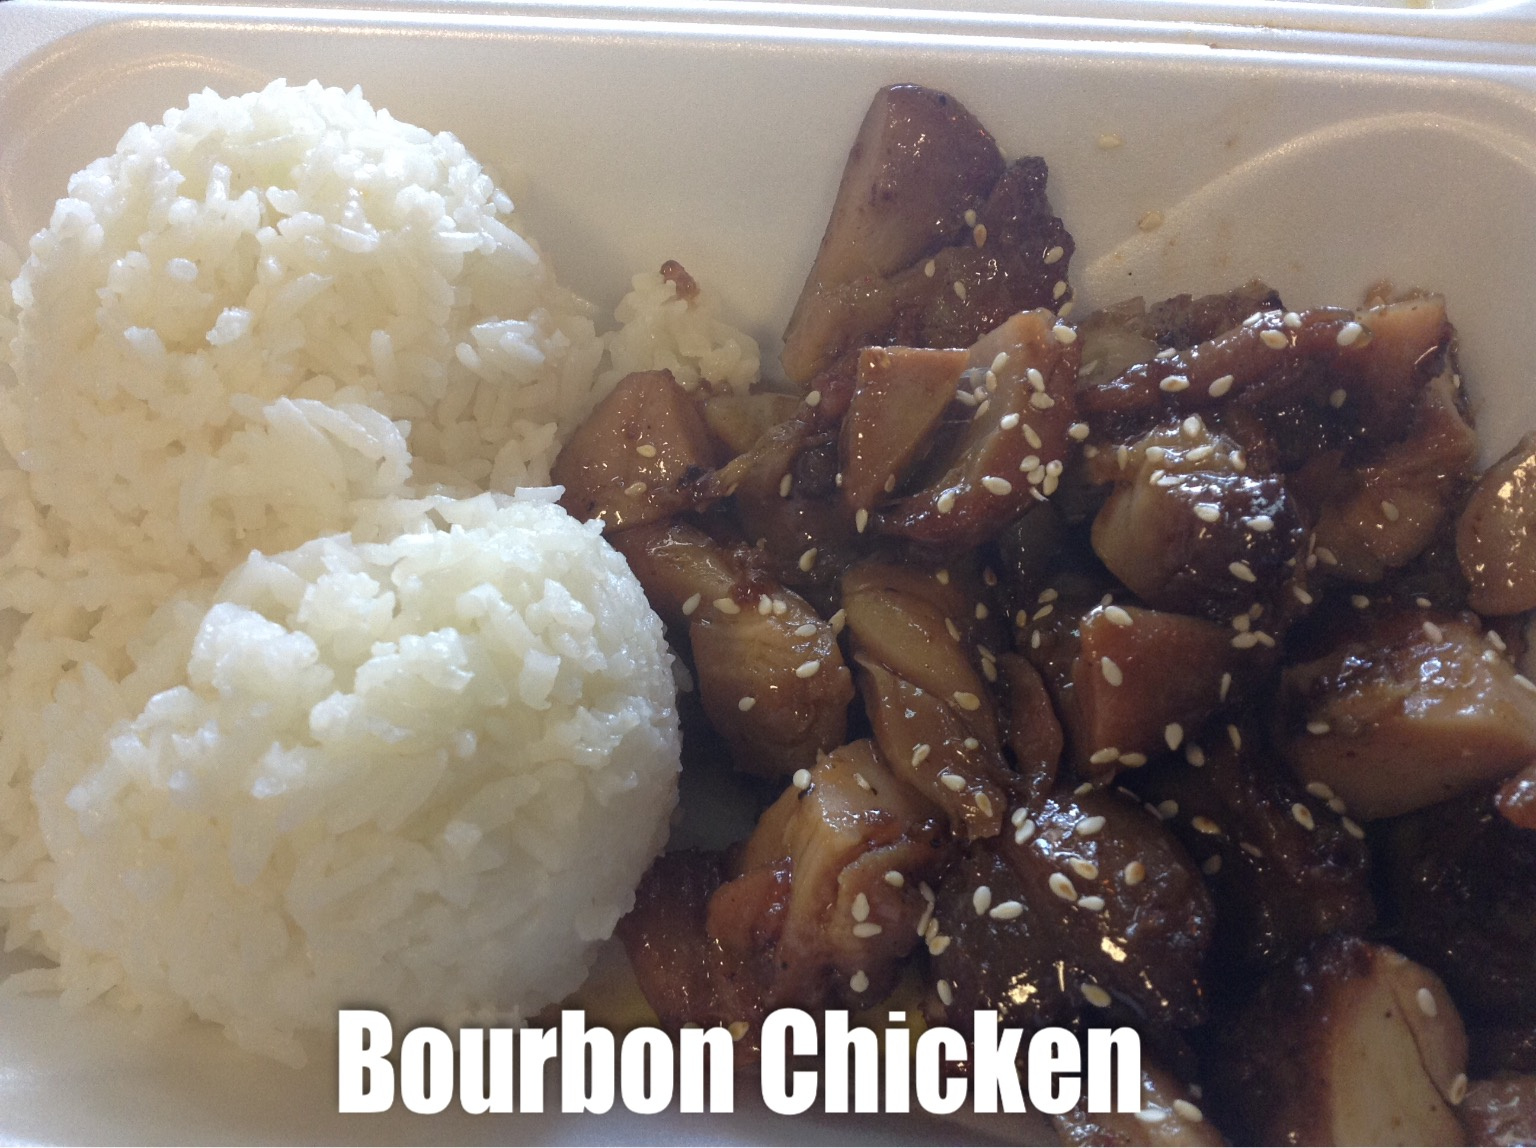 Bourbon Chicken Image